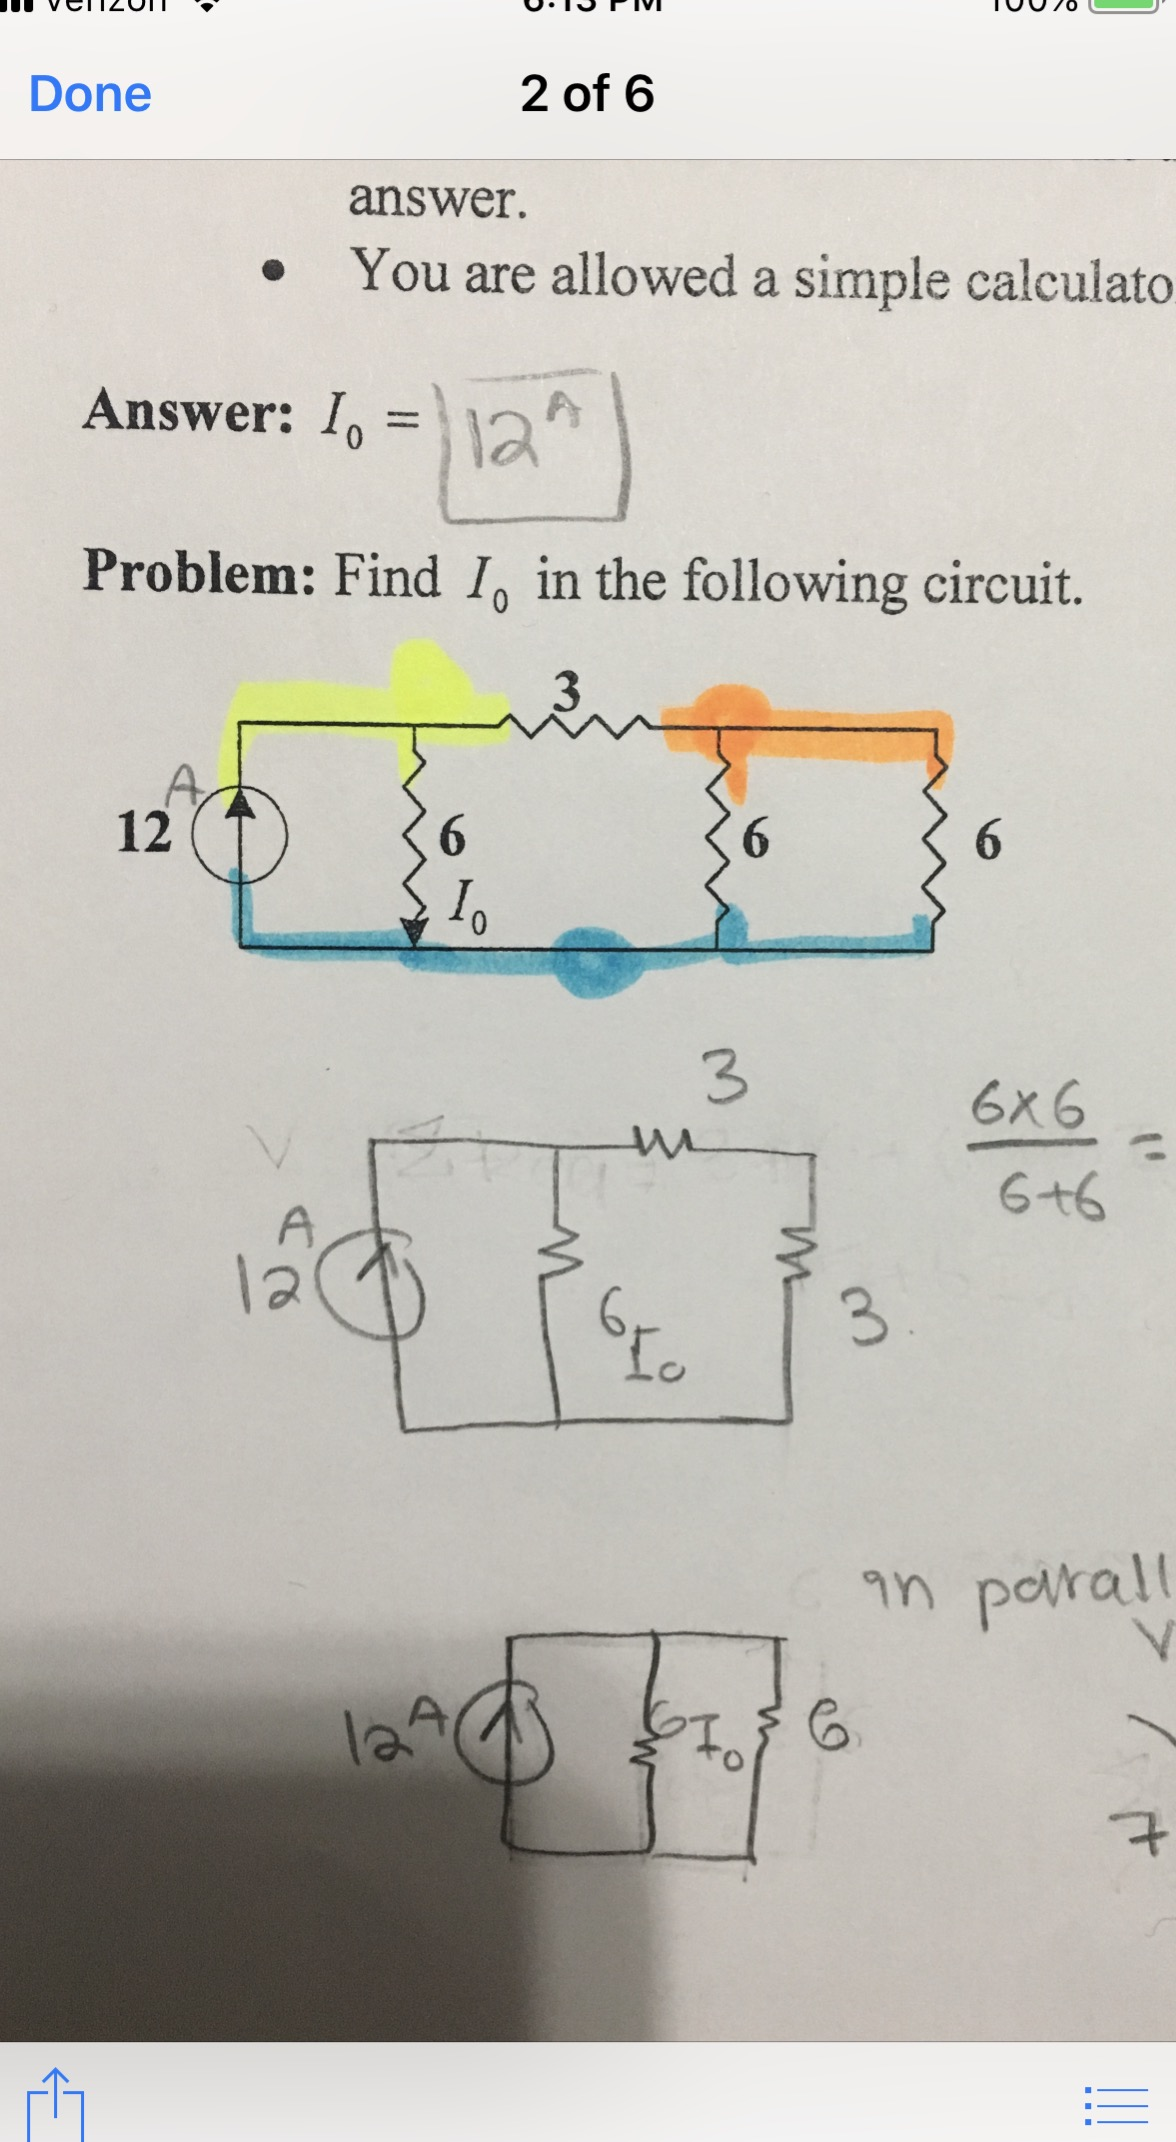 Done 2 of 6 answer. You are allowed a simple calculato Answer: A Problem: Find Io in the following circuit. 3 3 6x6 6+6 la Lo in porall le